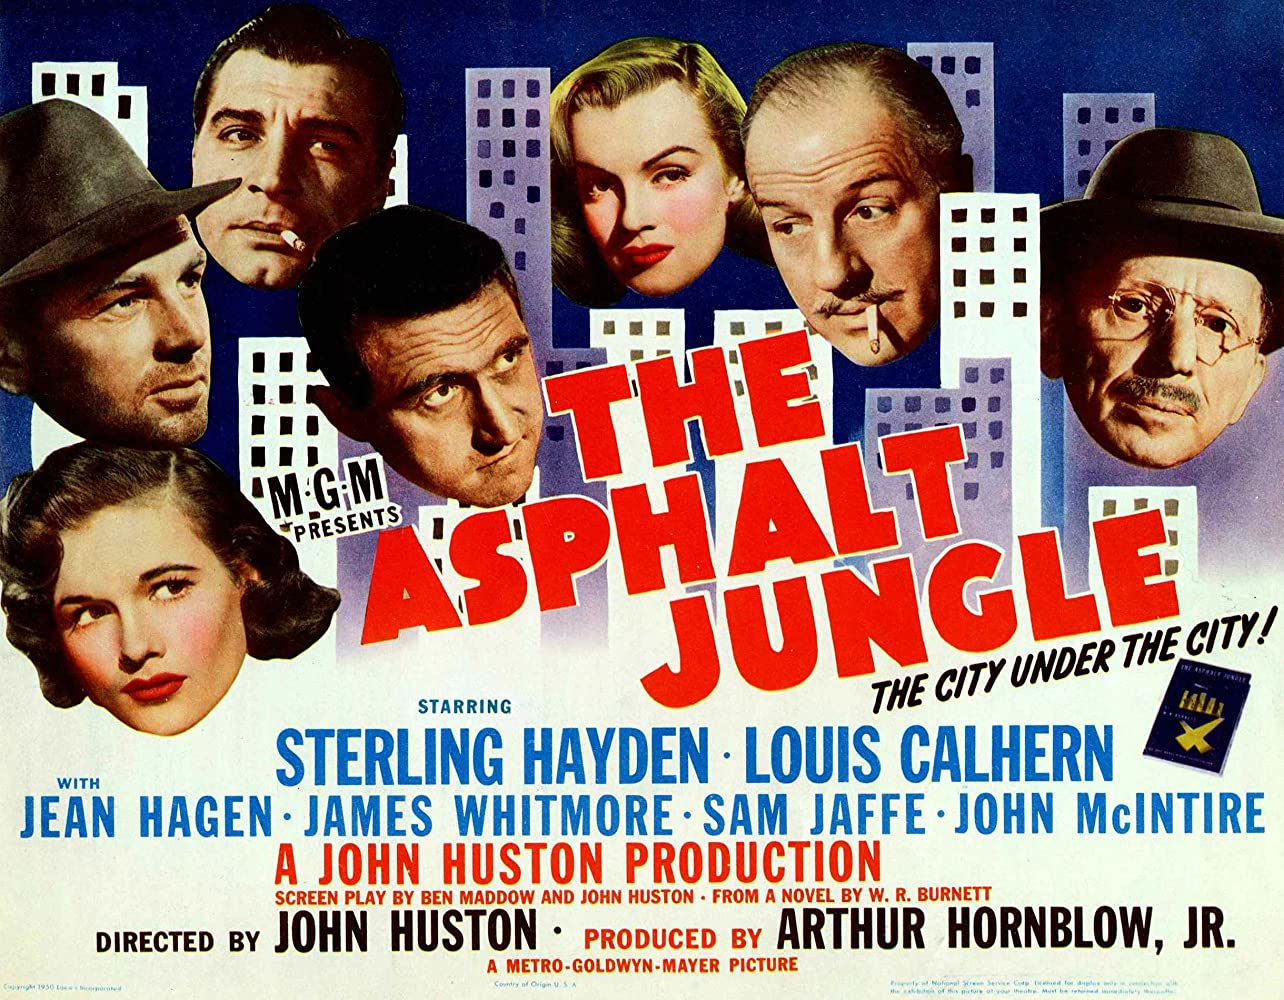 Marilyn Monroe, Sterling Hayden, Louis Calhern, Anthony Caruso, Jean Hagen, Sam Jaffe, and James Whitmore in The Asphalt Jungle (1950)